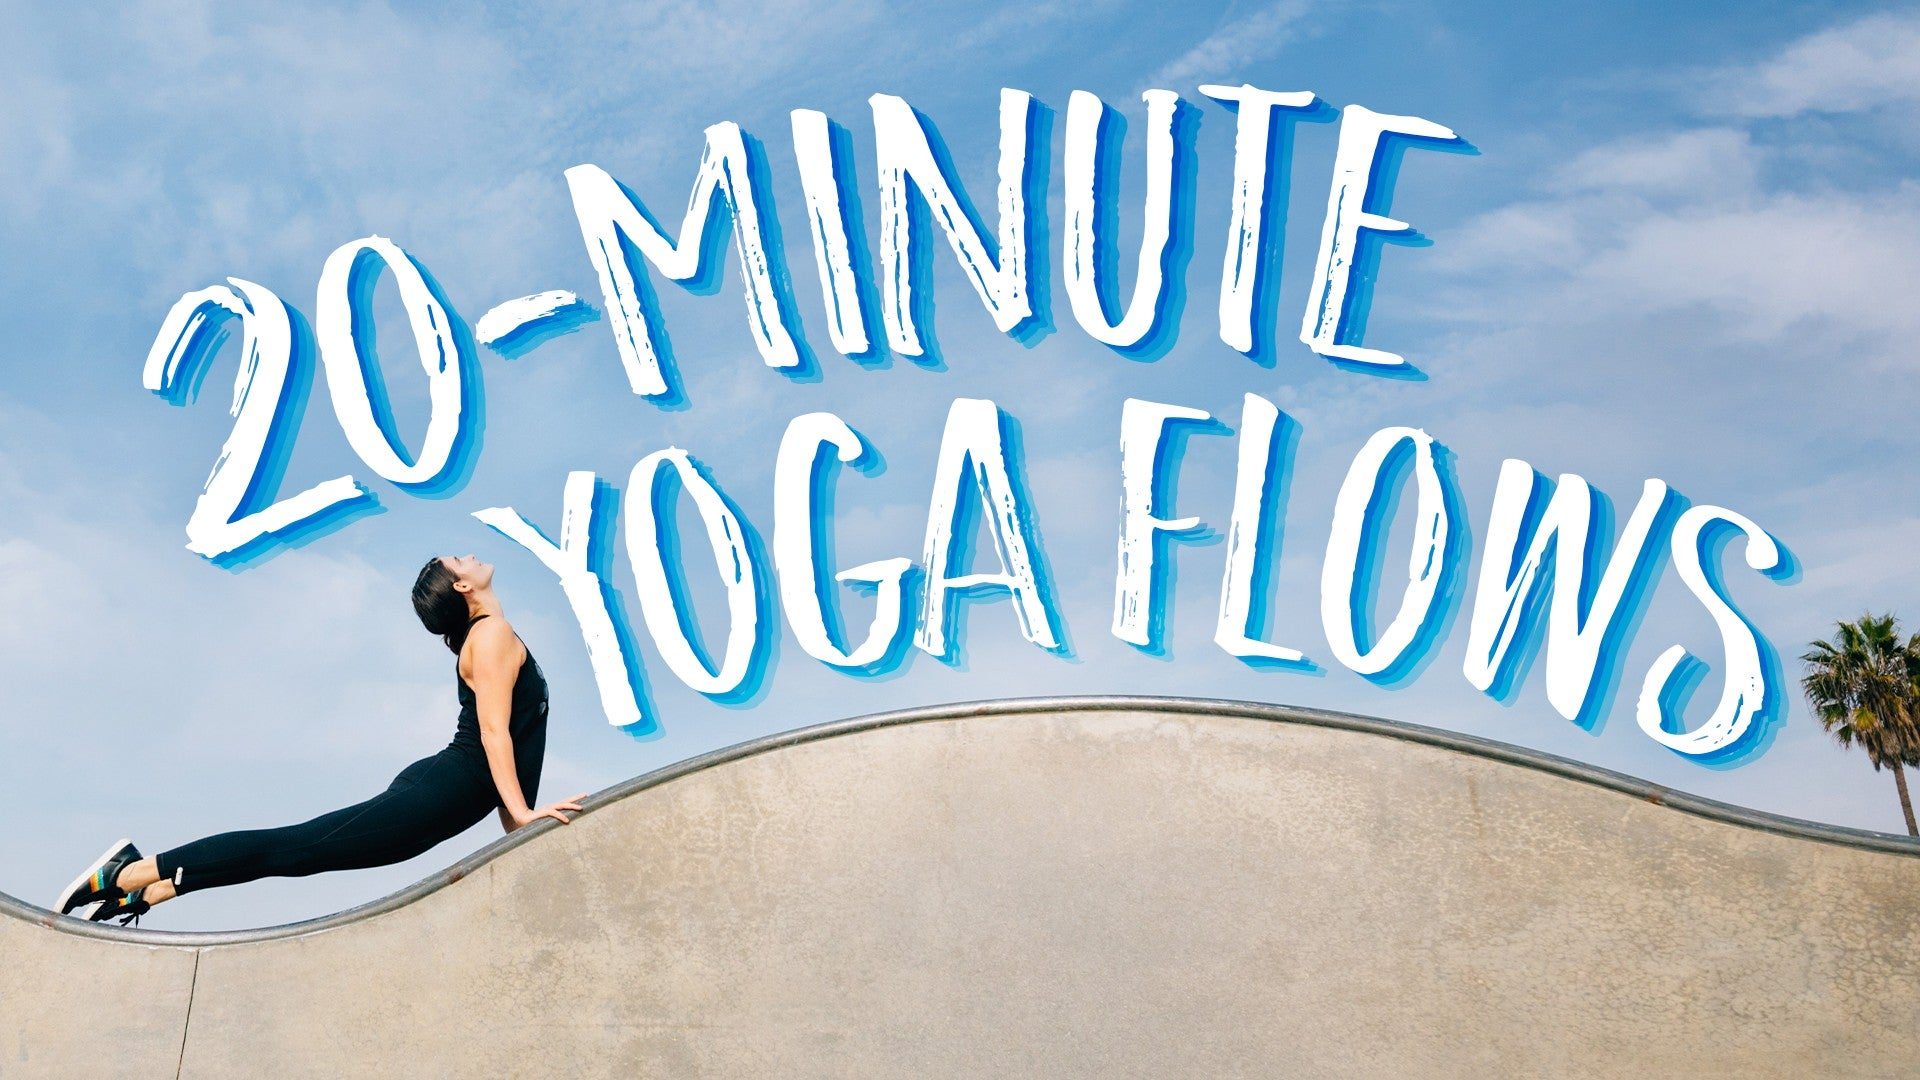 20 Minute Yoga Flows Artwork